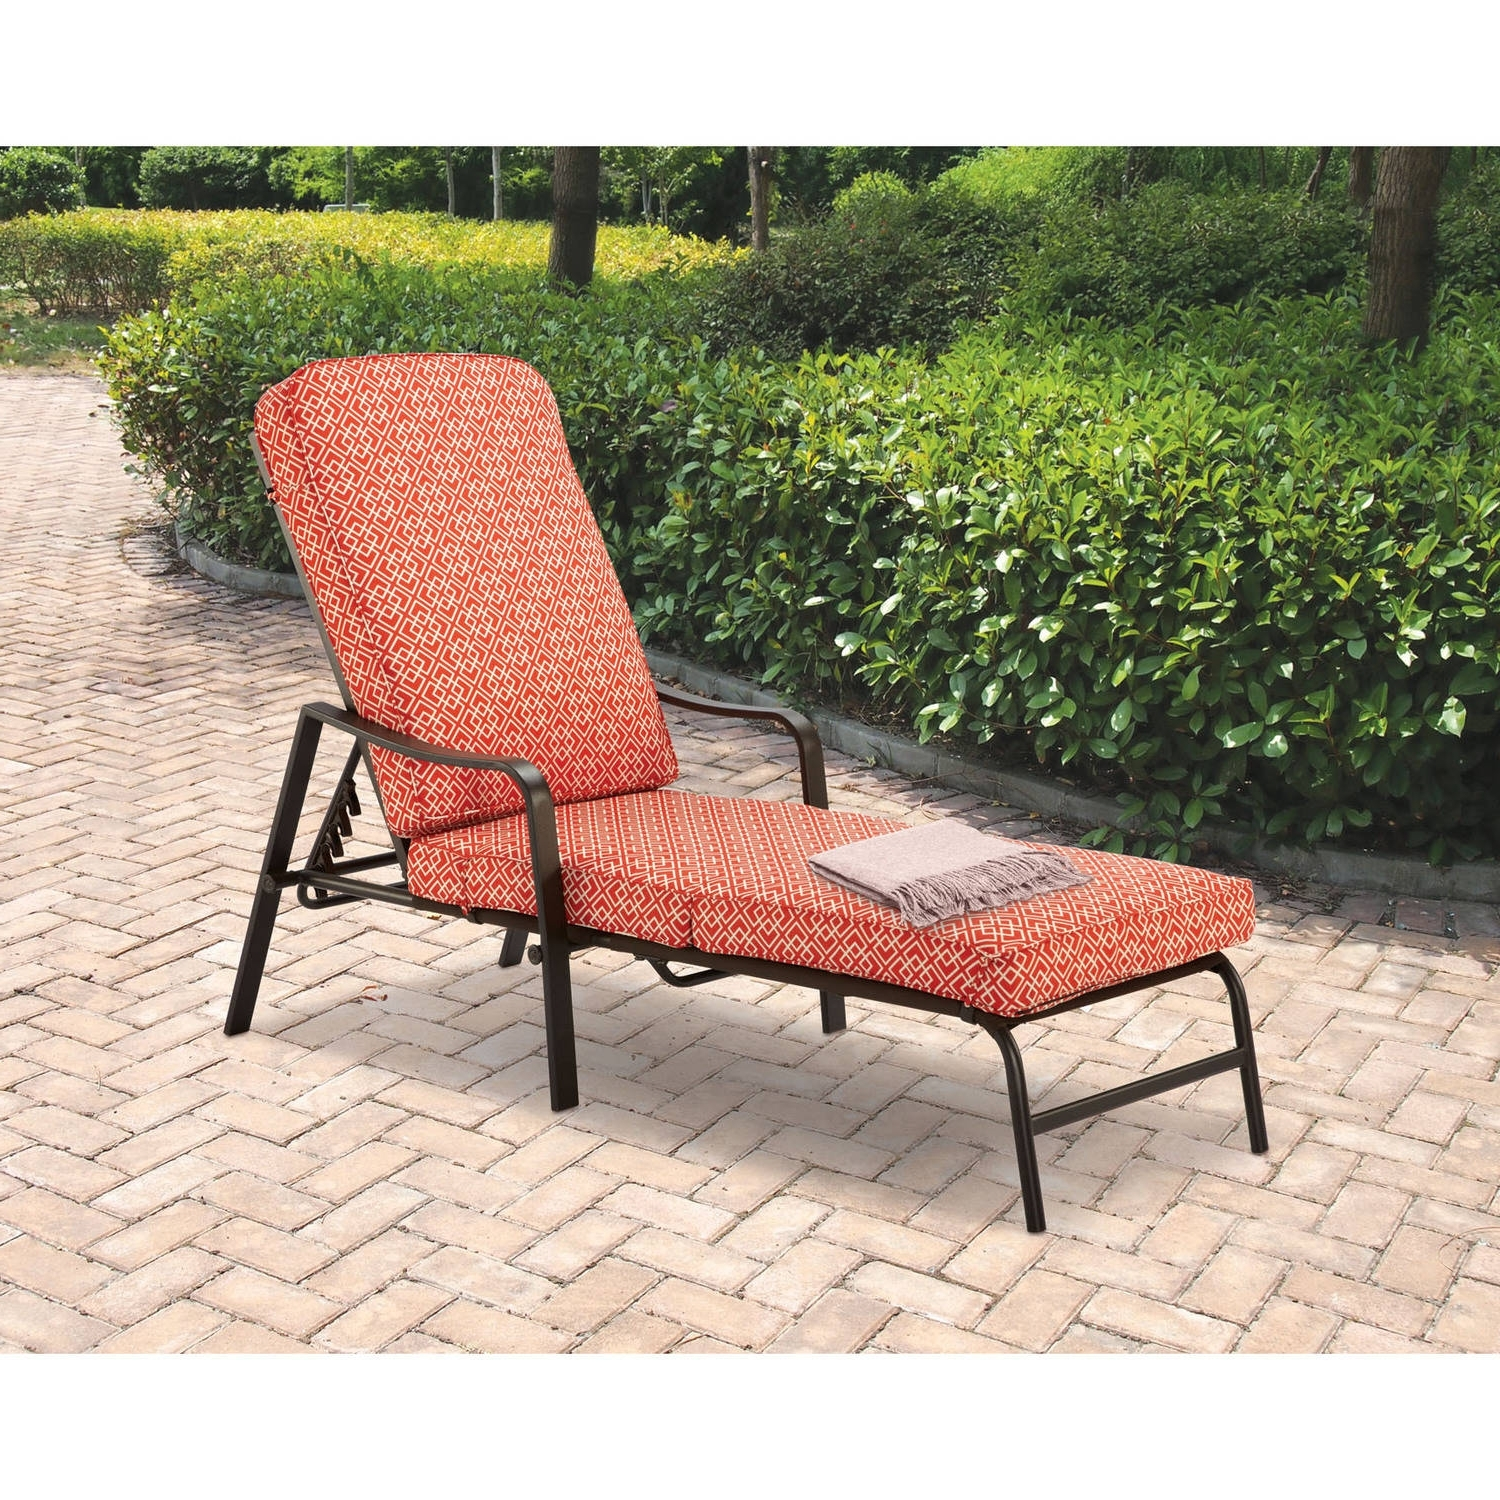 Mainstays Outdoor Chaise Lounge, Orange Geo Pattern – Walmart Pertaining To Current Outdoor Cushions For Chaise Lounge Chairs (View 11 of 15)